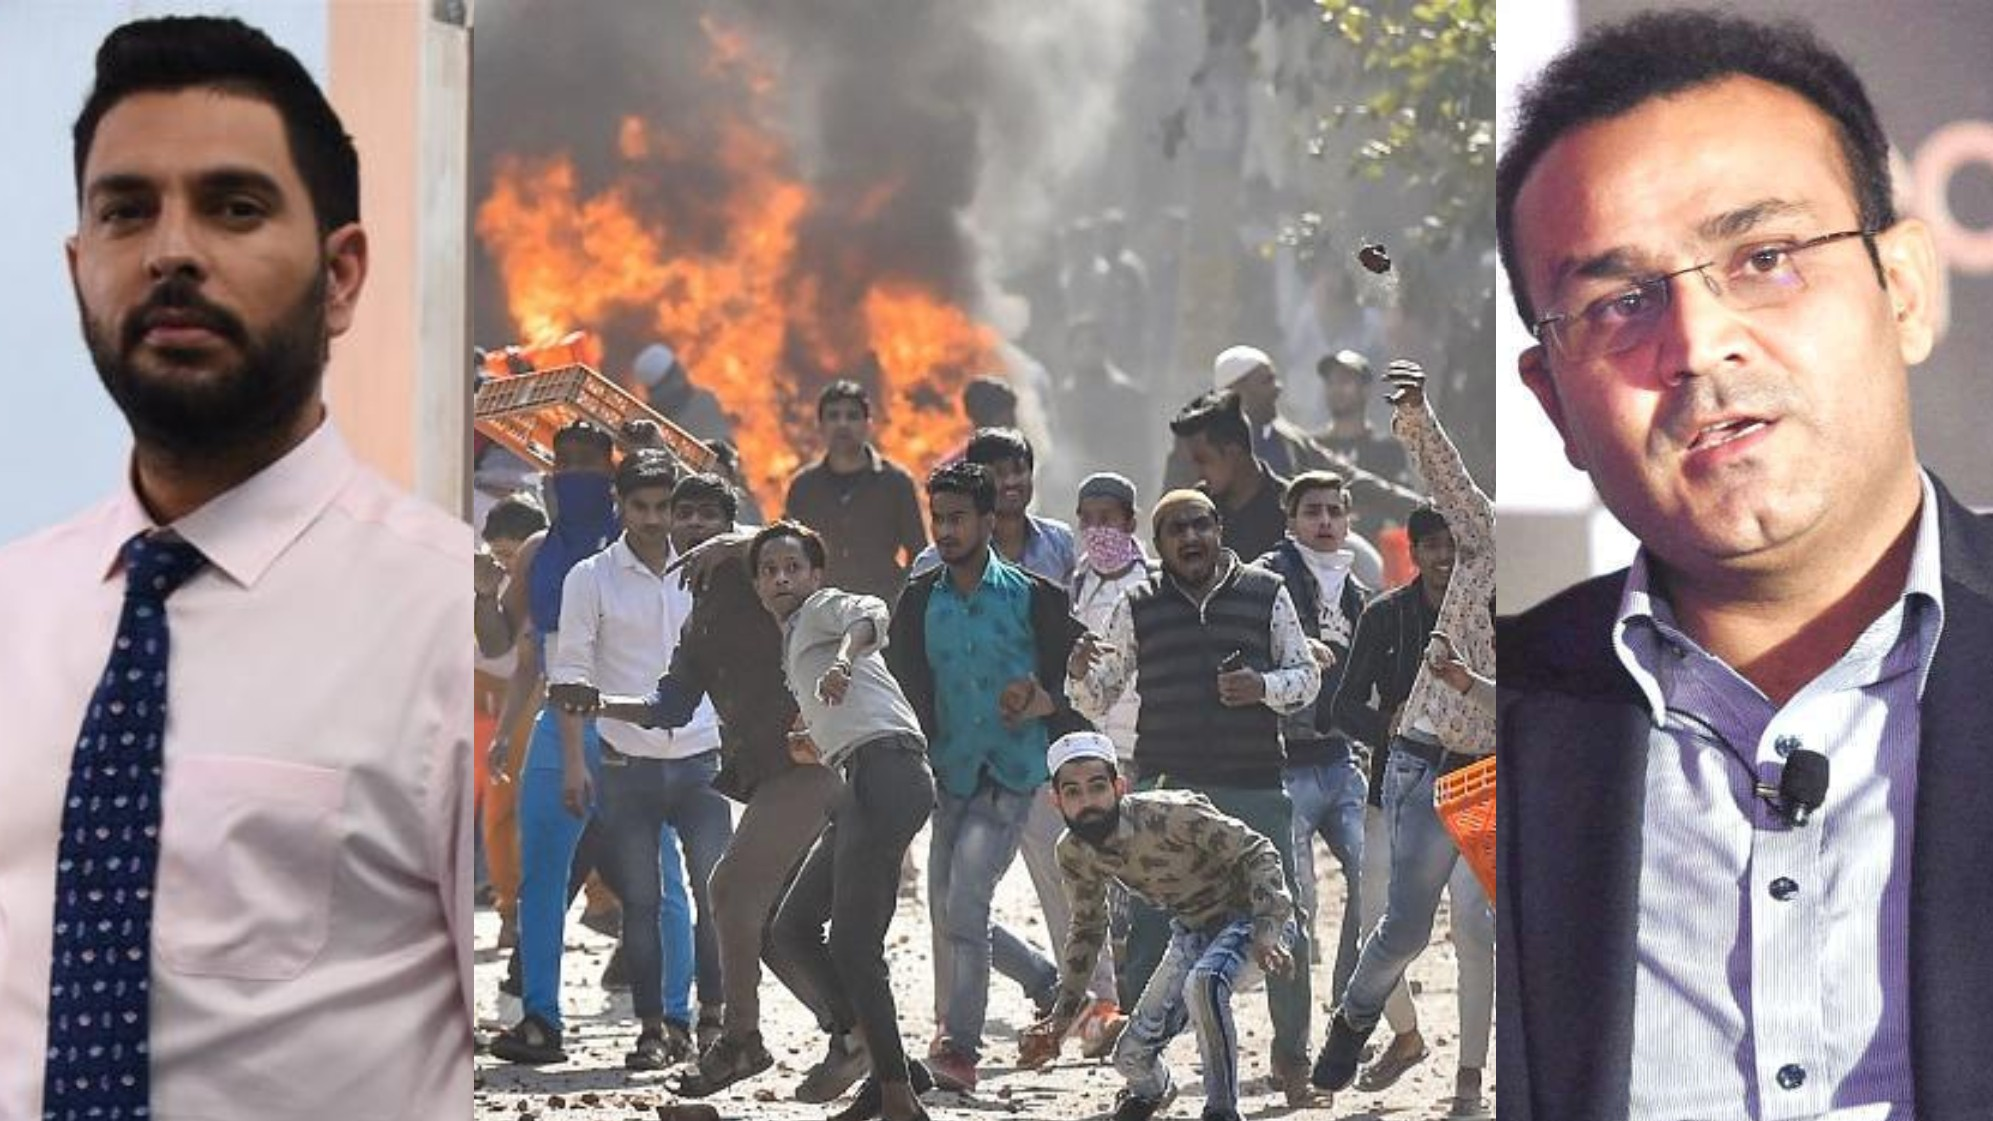 Irfan Pathan, Virender Sehwag and Yuvraj Singh call for peace in Delhi after intense rioting